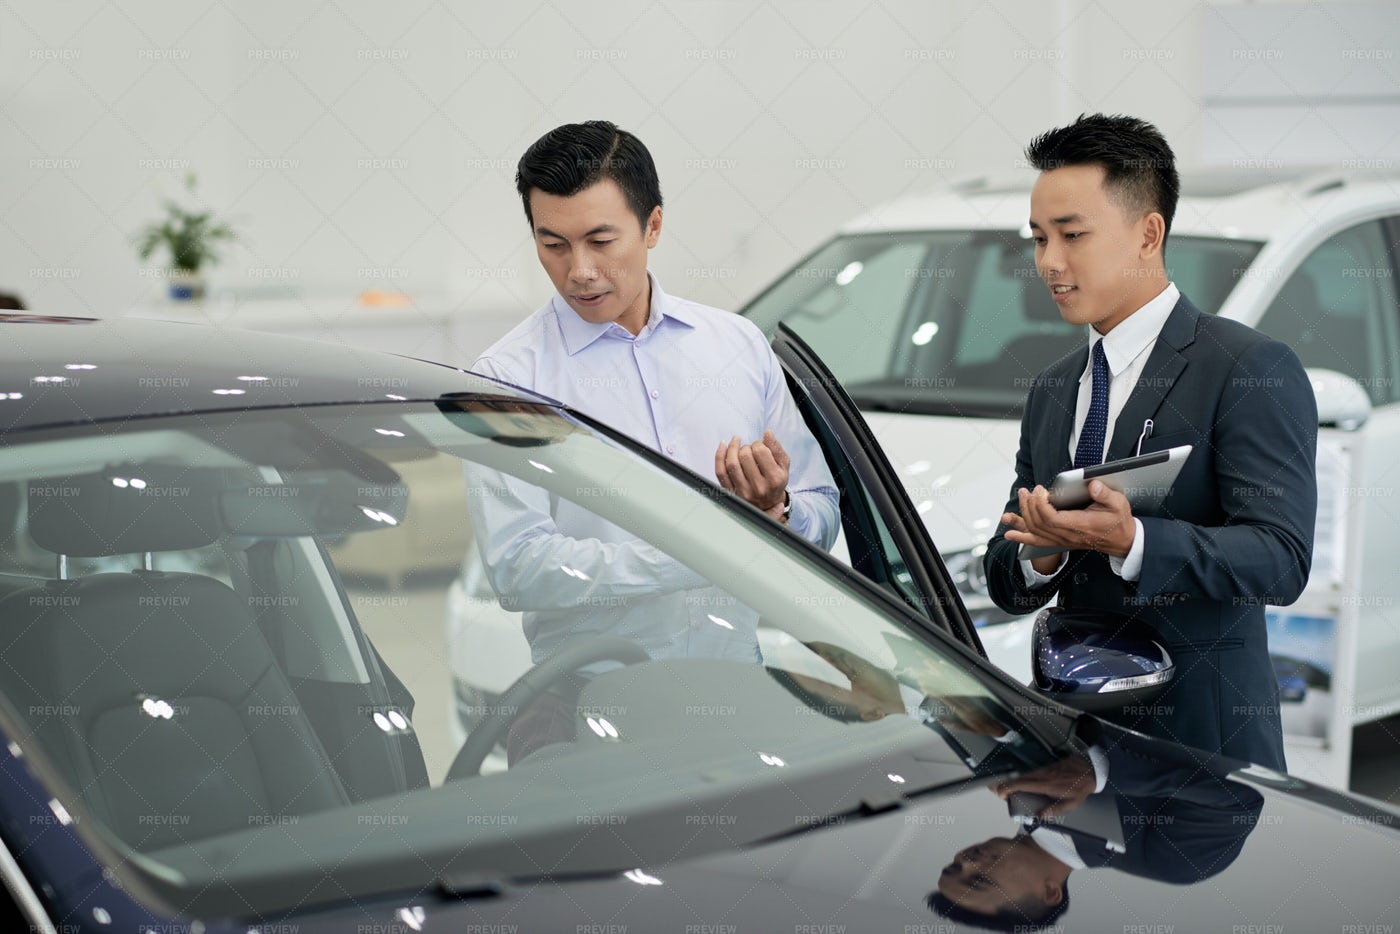 Dealership Working Taking To Client: Stock Photos